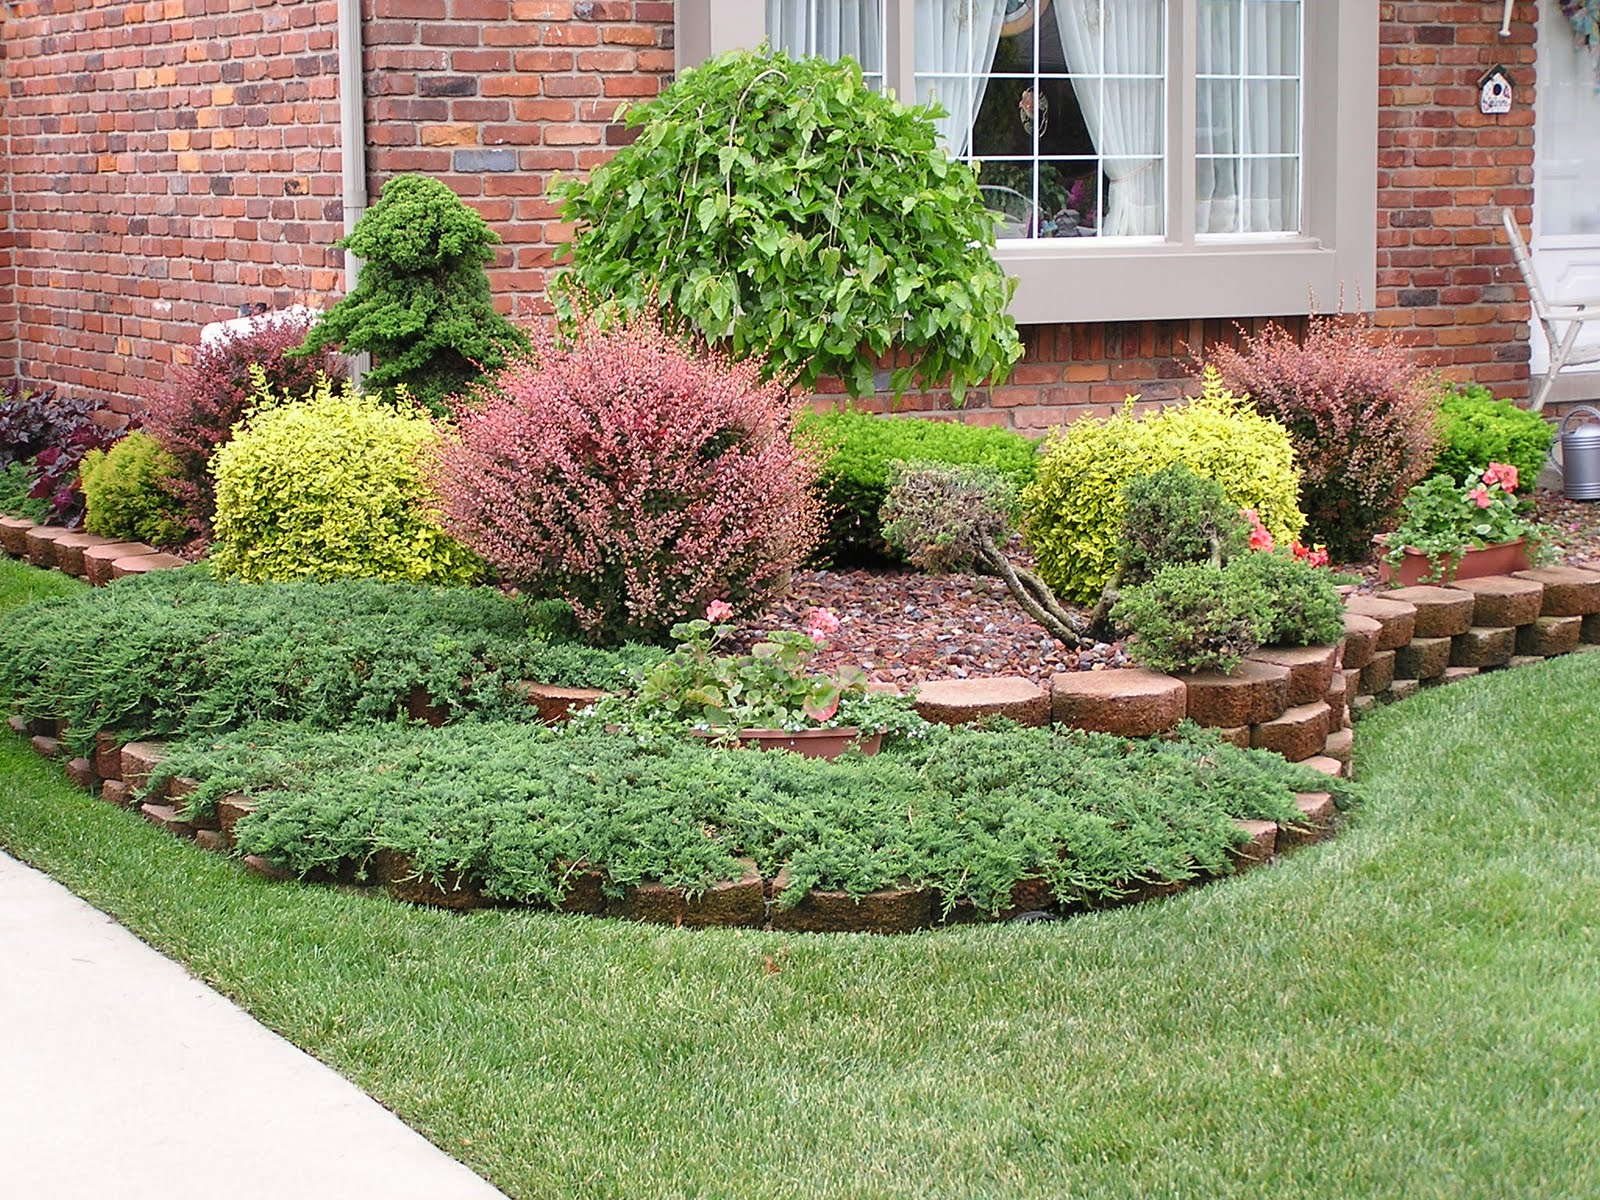 D i y d e s i g n curb appeal part 2 the landscaping for Small front garden landscaping